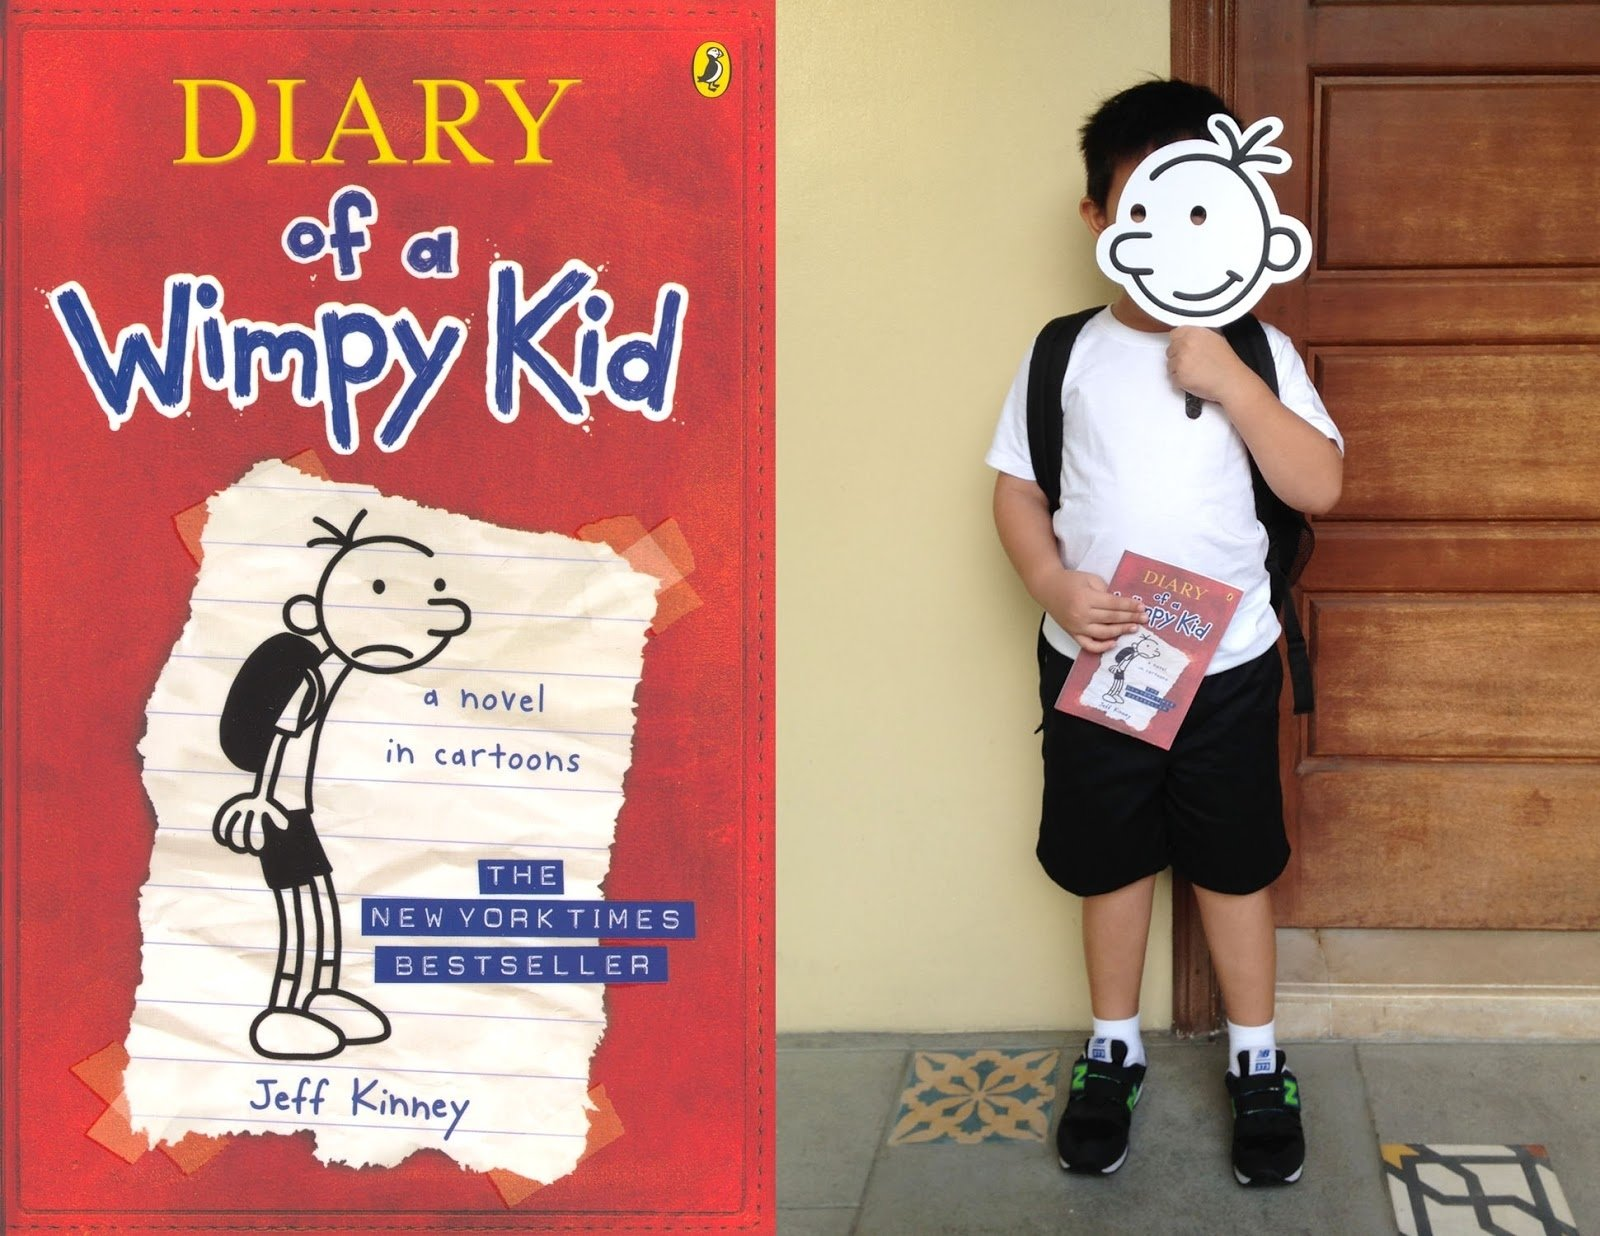 10 Gorgeous Diary Of A Wimpy Kid Costume Ideas mrsmommyholic diary of a wimpy kid costume for book week 2020